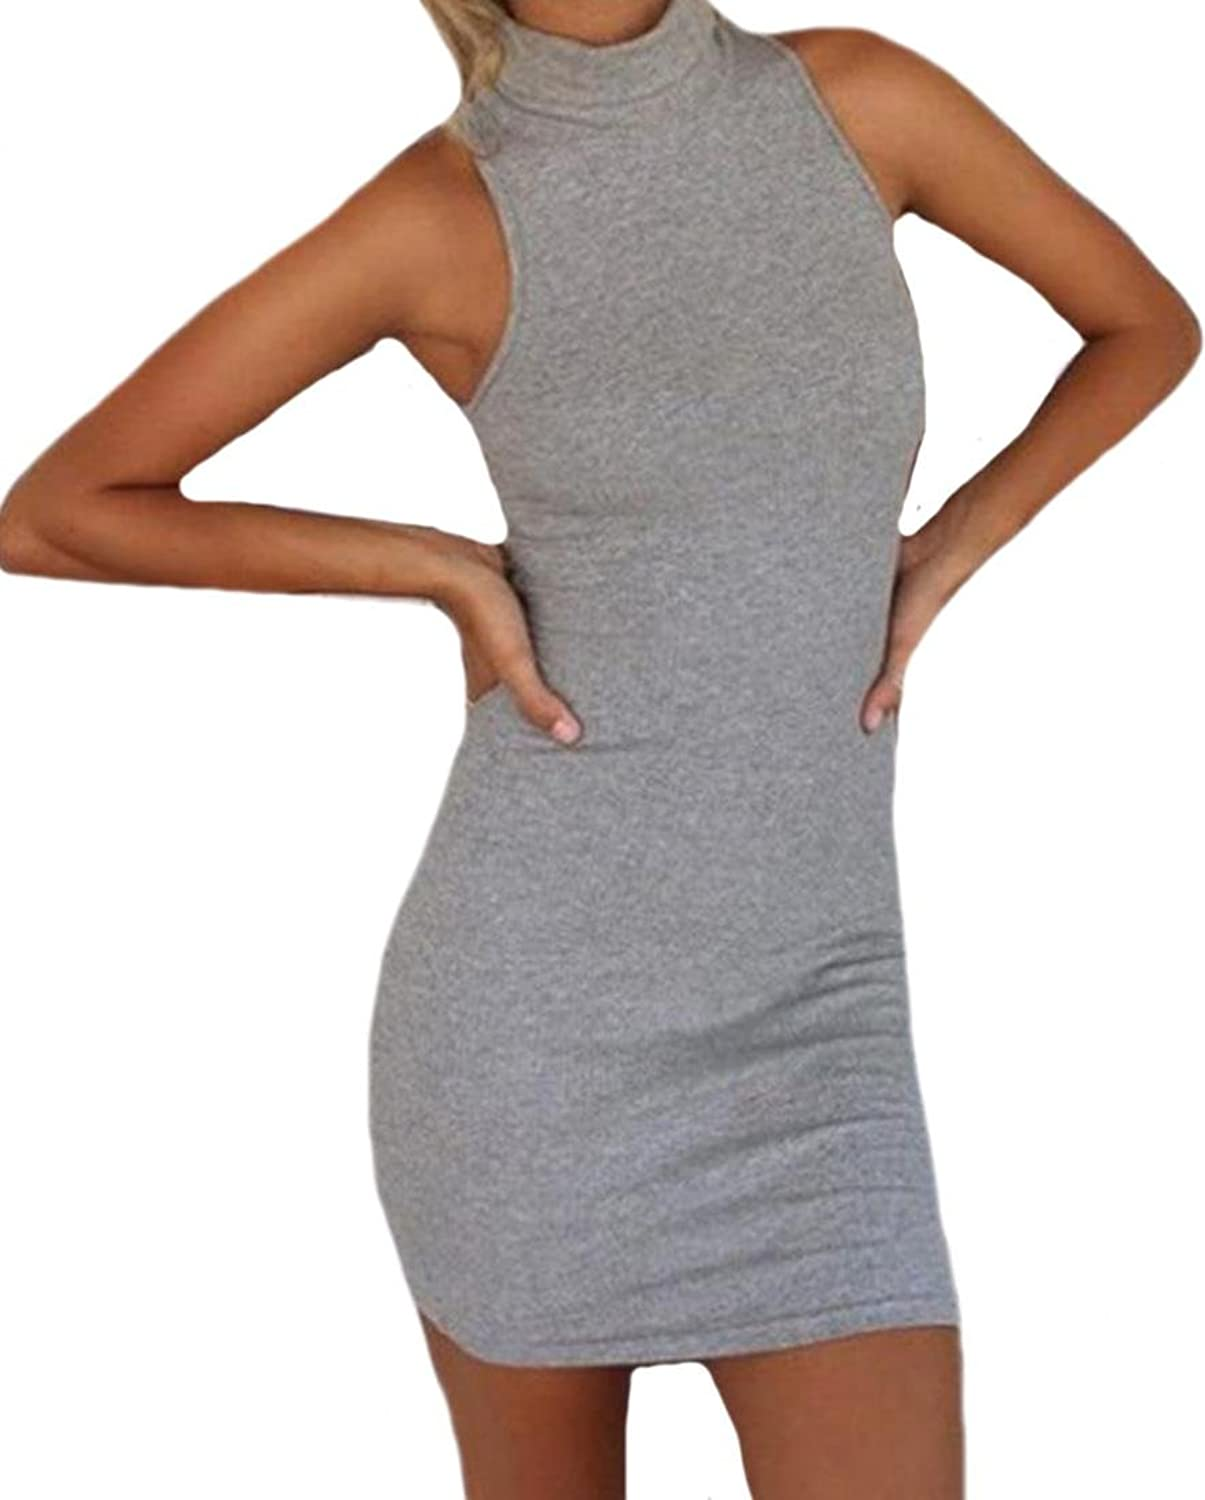 Oberora Women Sleeveless Package Hip Pencil Cocktail Party Dress